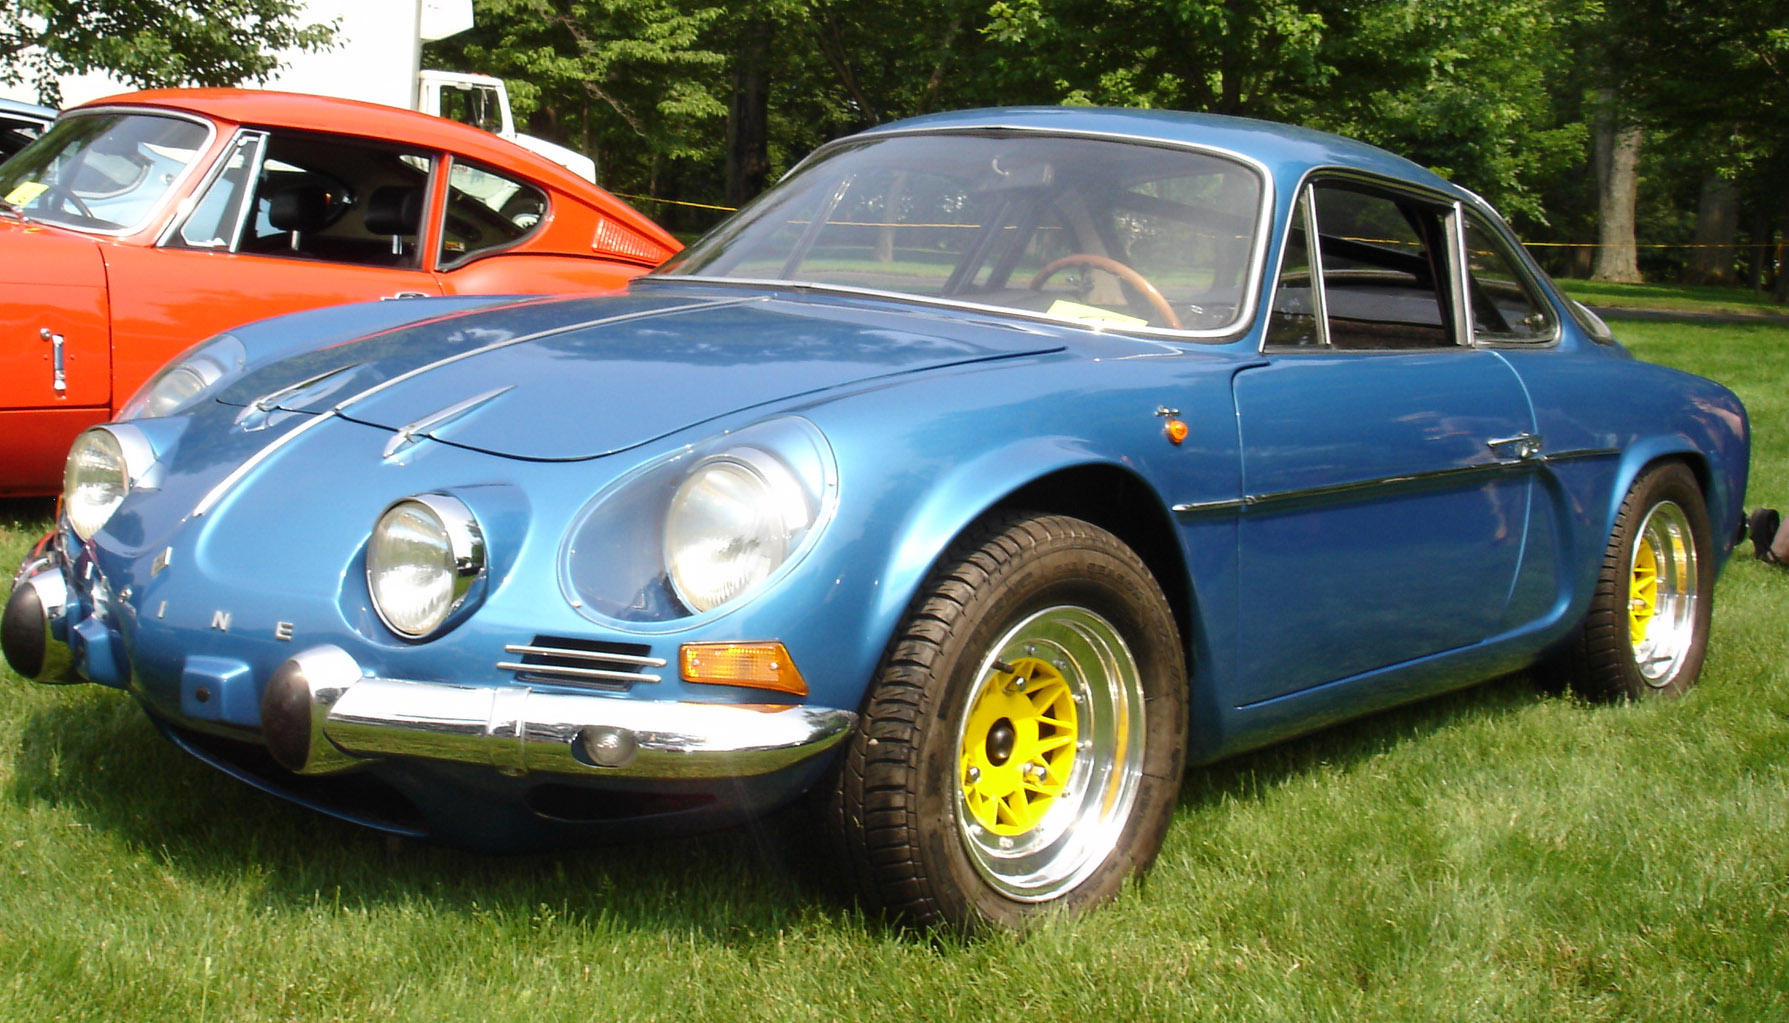 renault alpine a110 wikipedia wolna encyklopedia. Black Bedroom Furniture Sets. Home Design Ideas